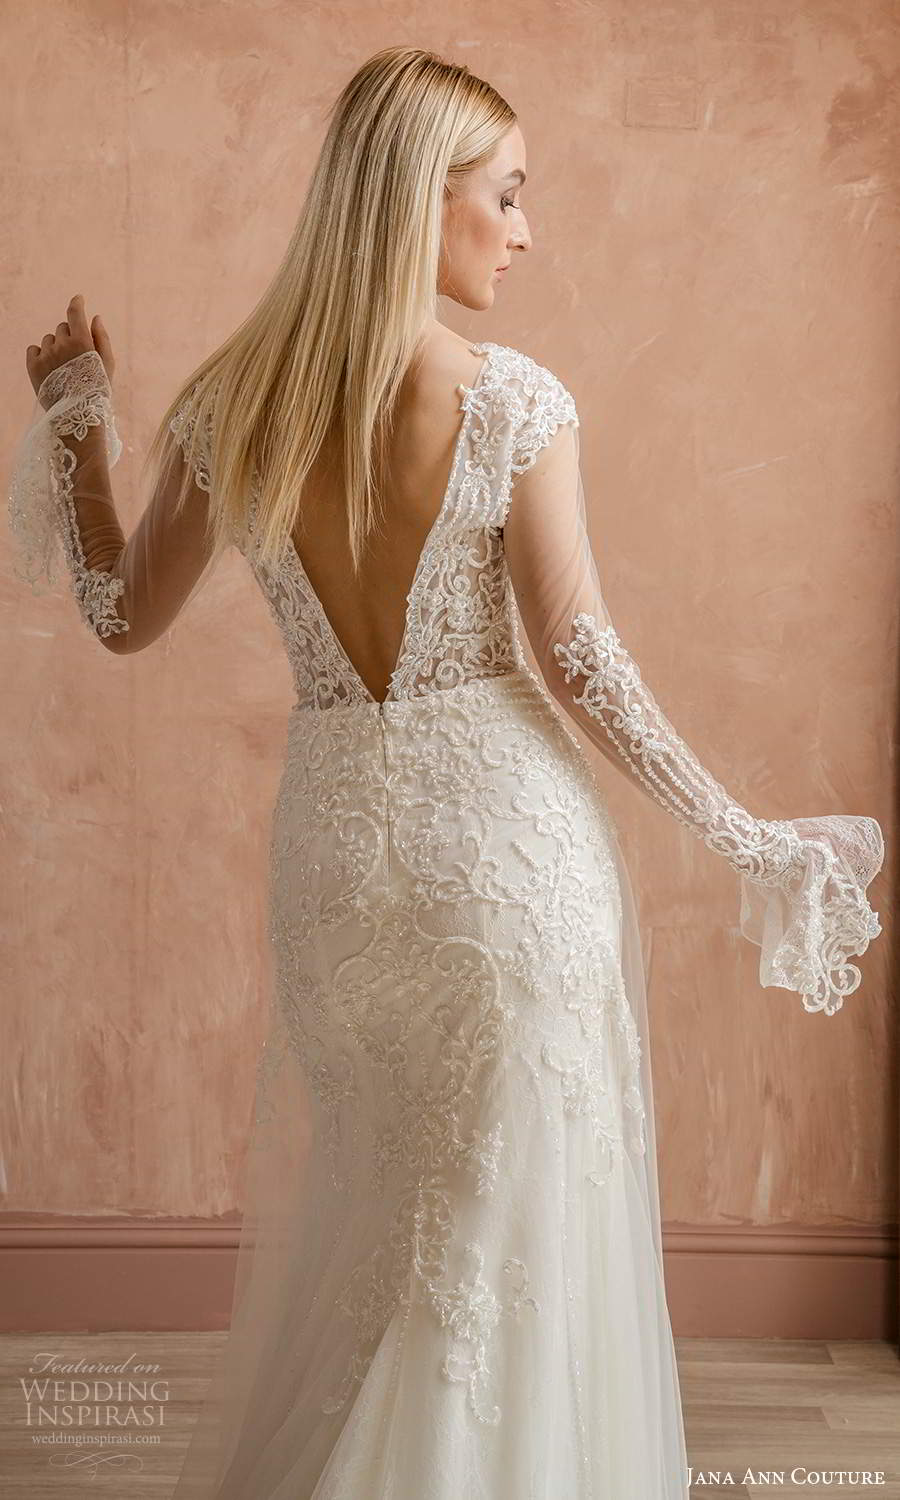 jana ann couture 2021 bridal long sleeves v neckline fully embellished sheath wedding dress chapel train (9) zbv